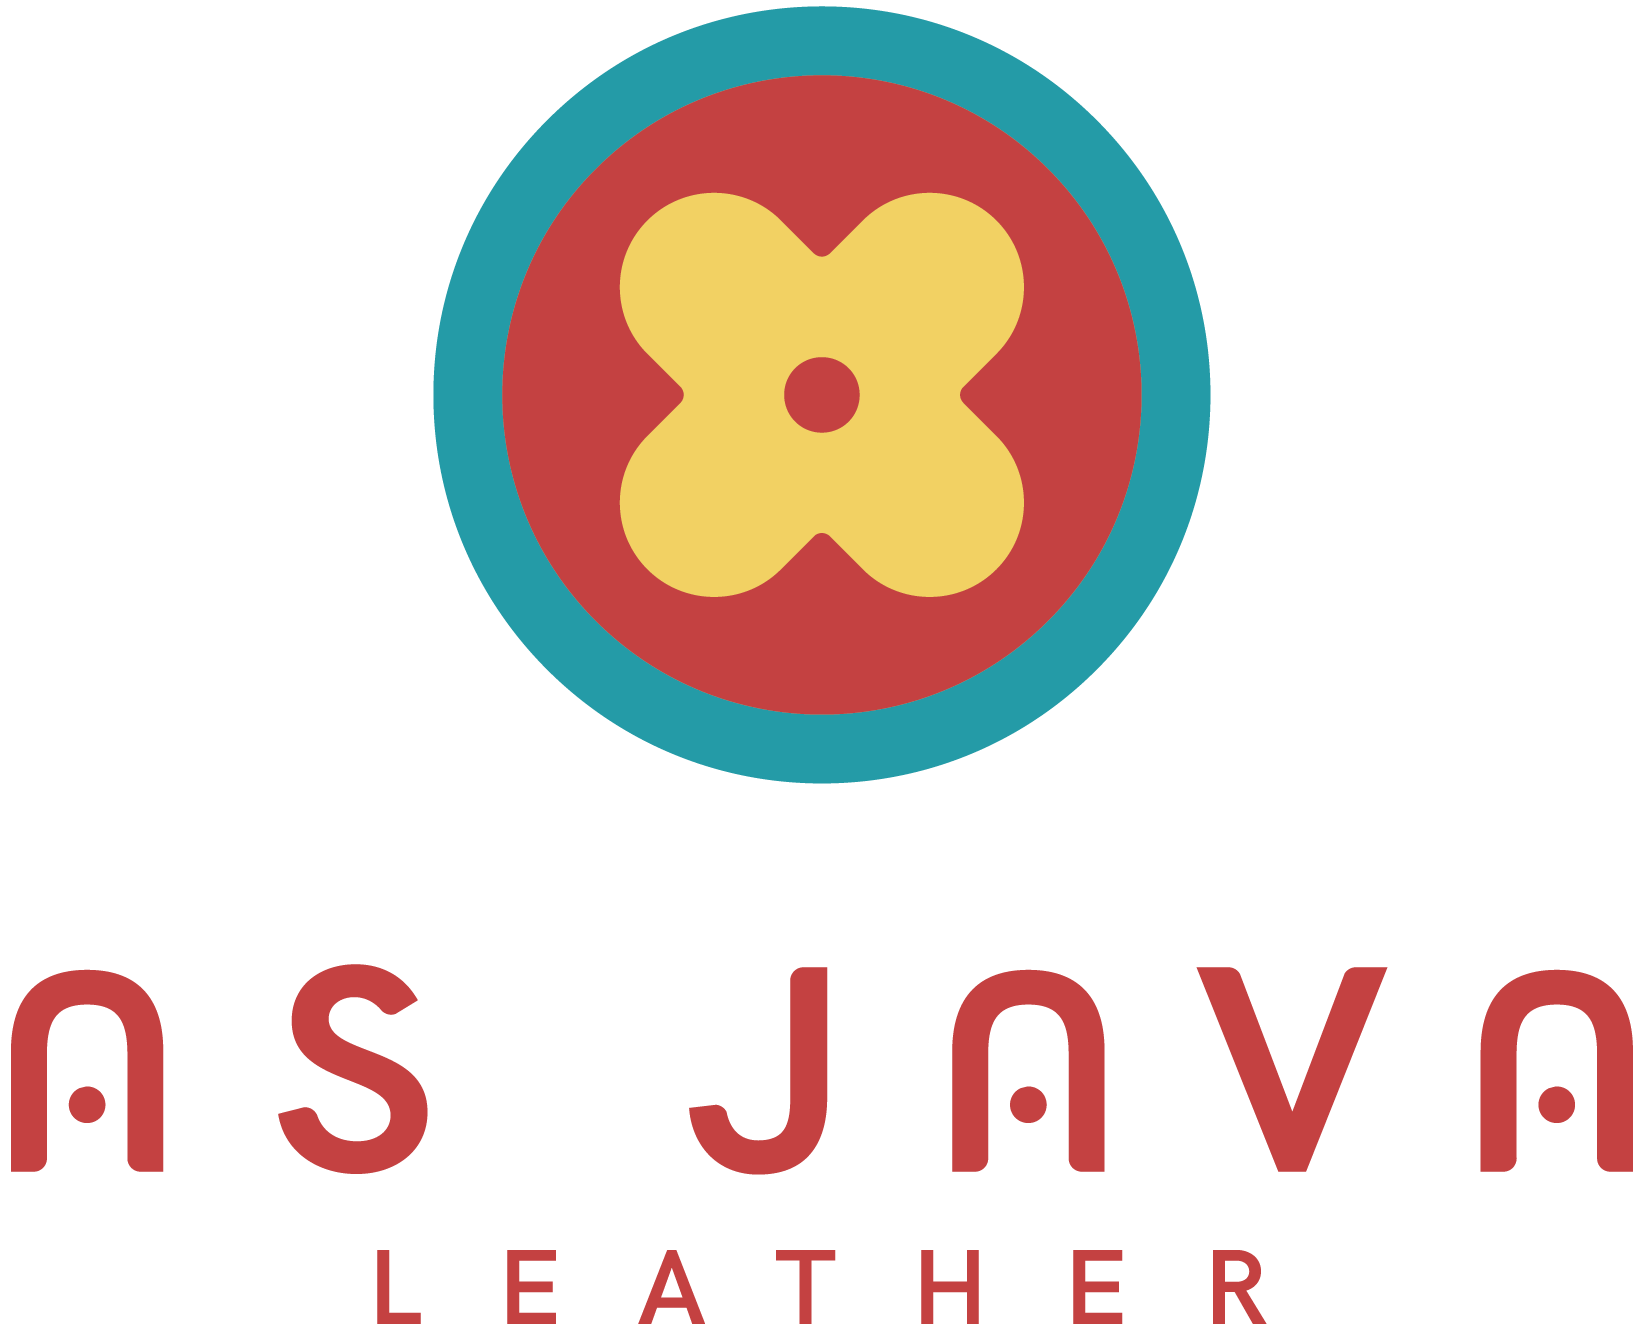 As Java Leather